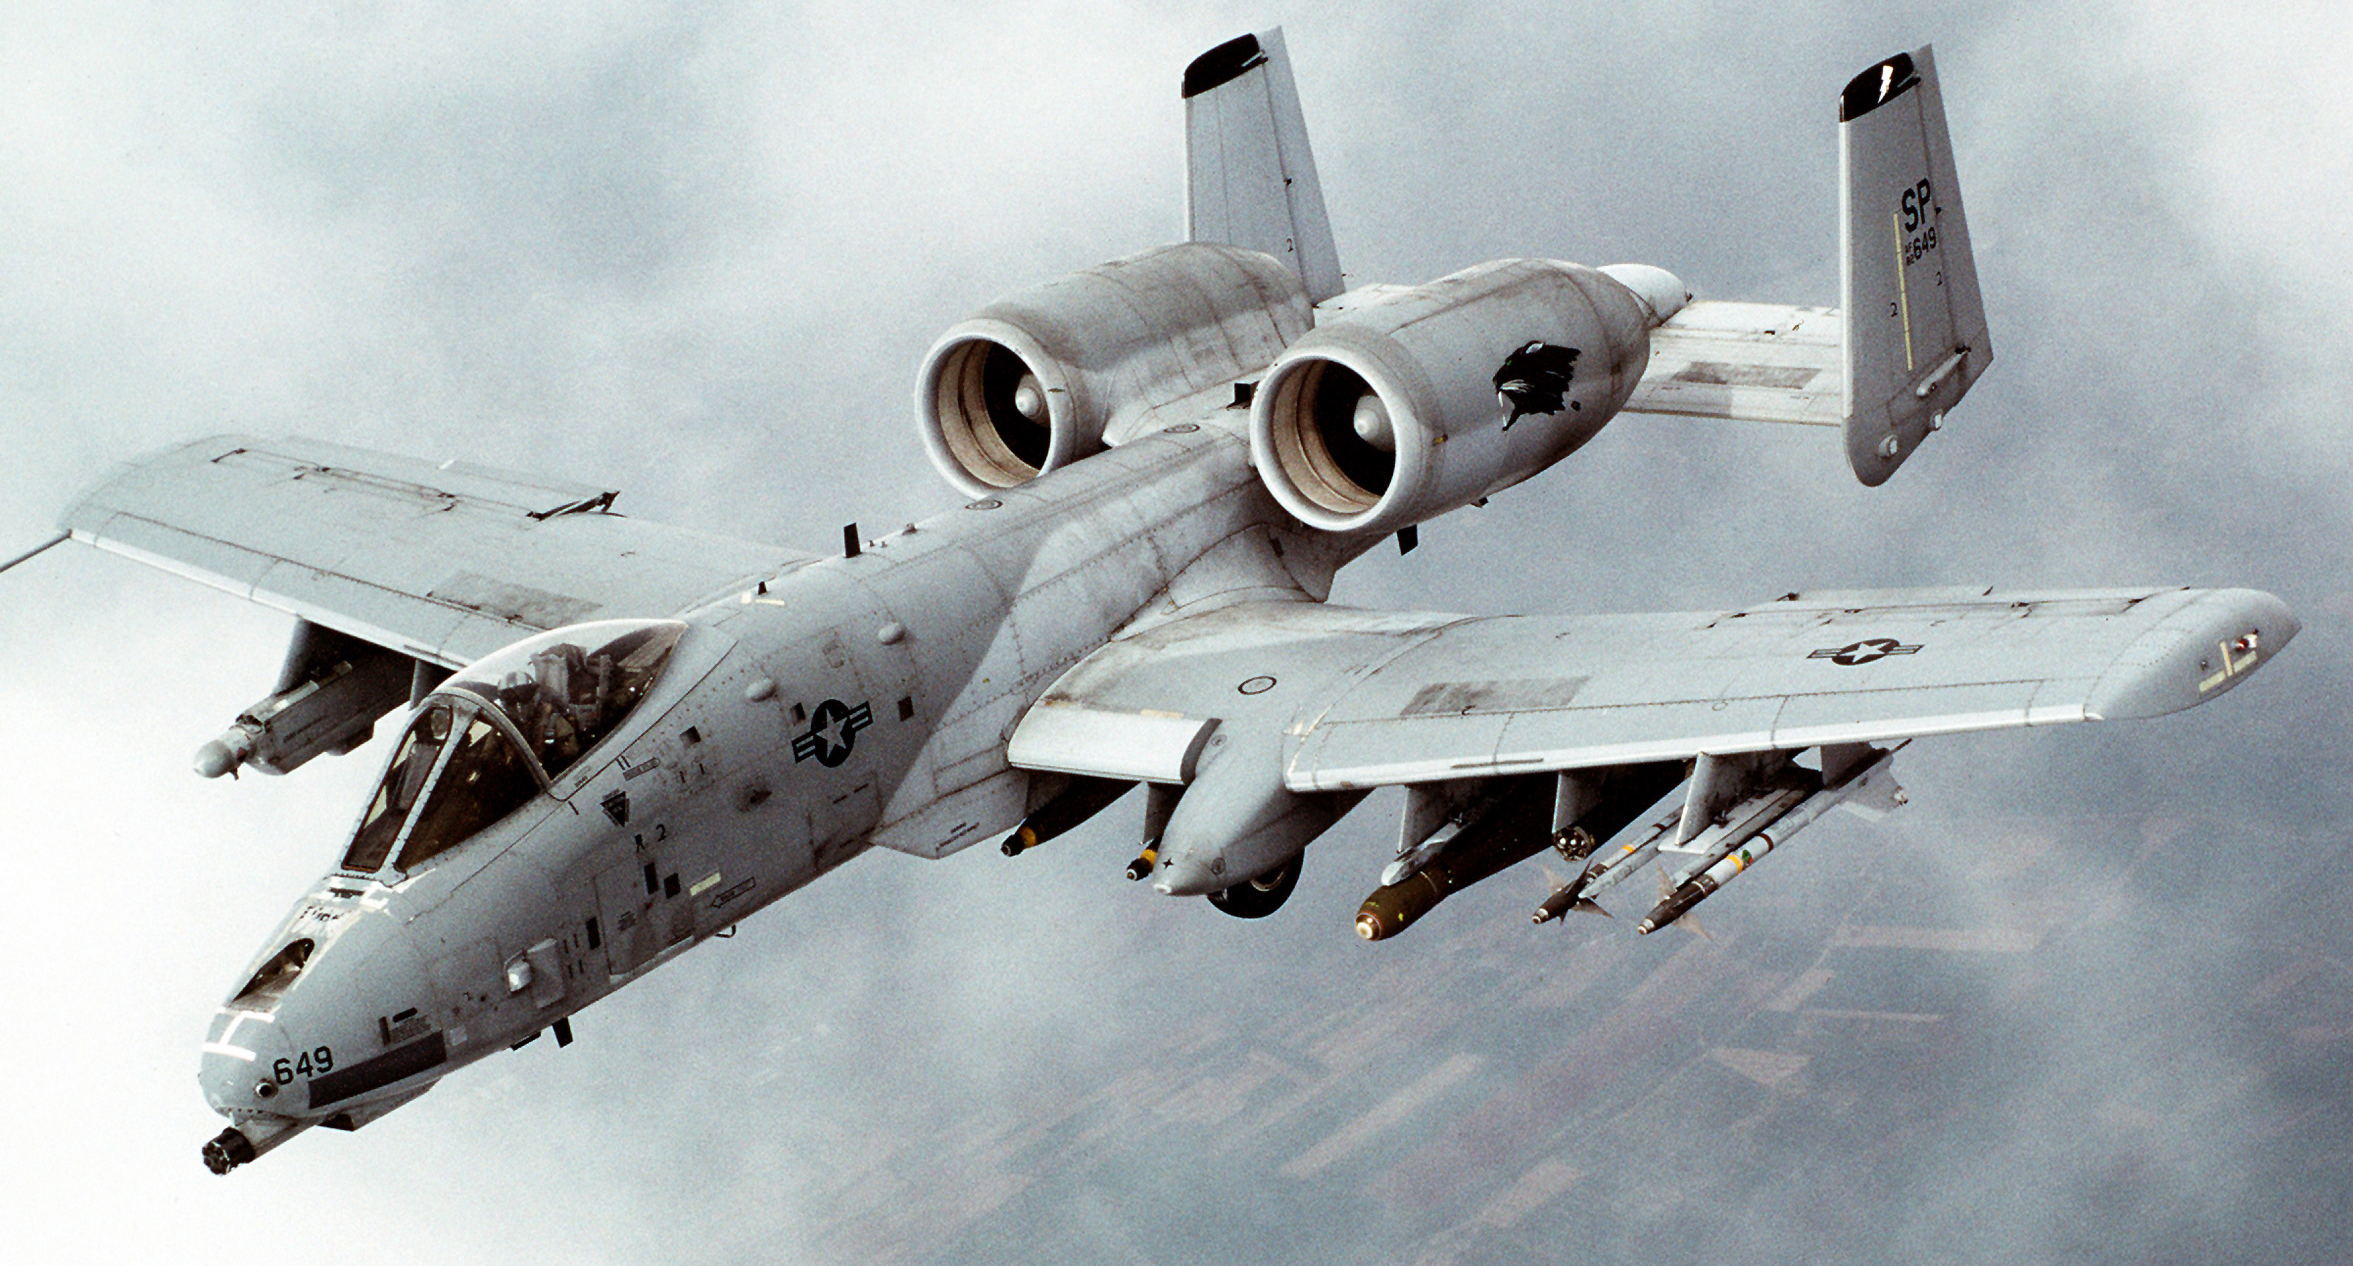 File:A-10 Thunderbolt II In-flight-2.jpg - Wikimedia Commons